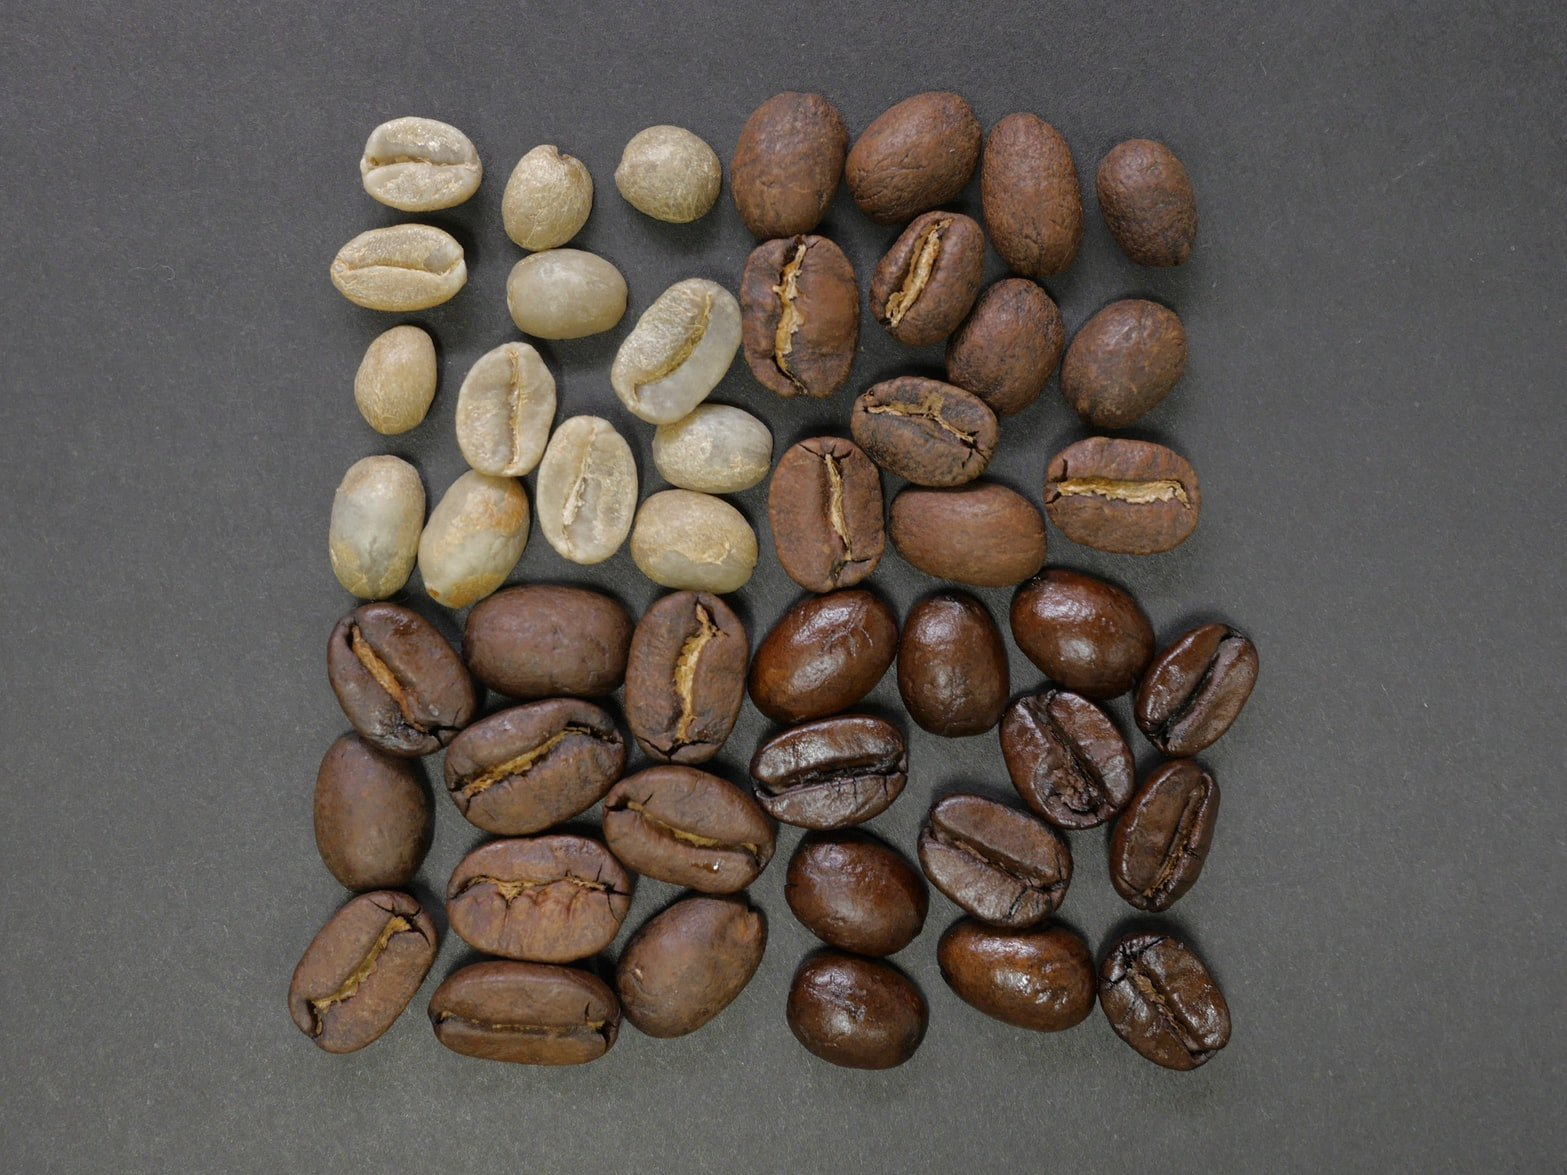 Basic Facts About Each Coffee Roast